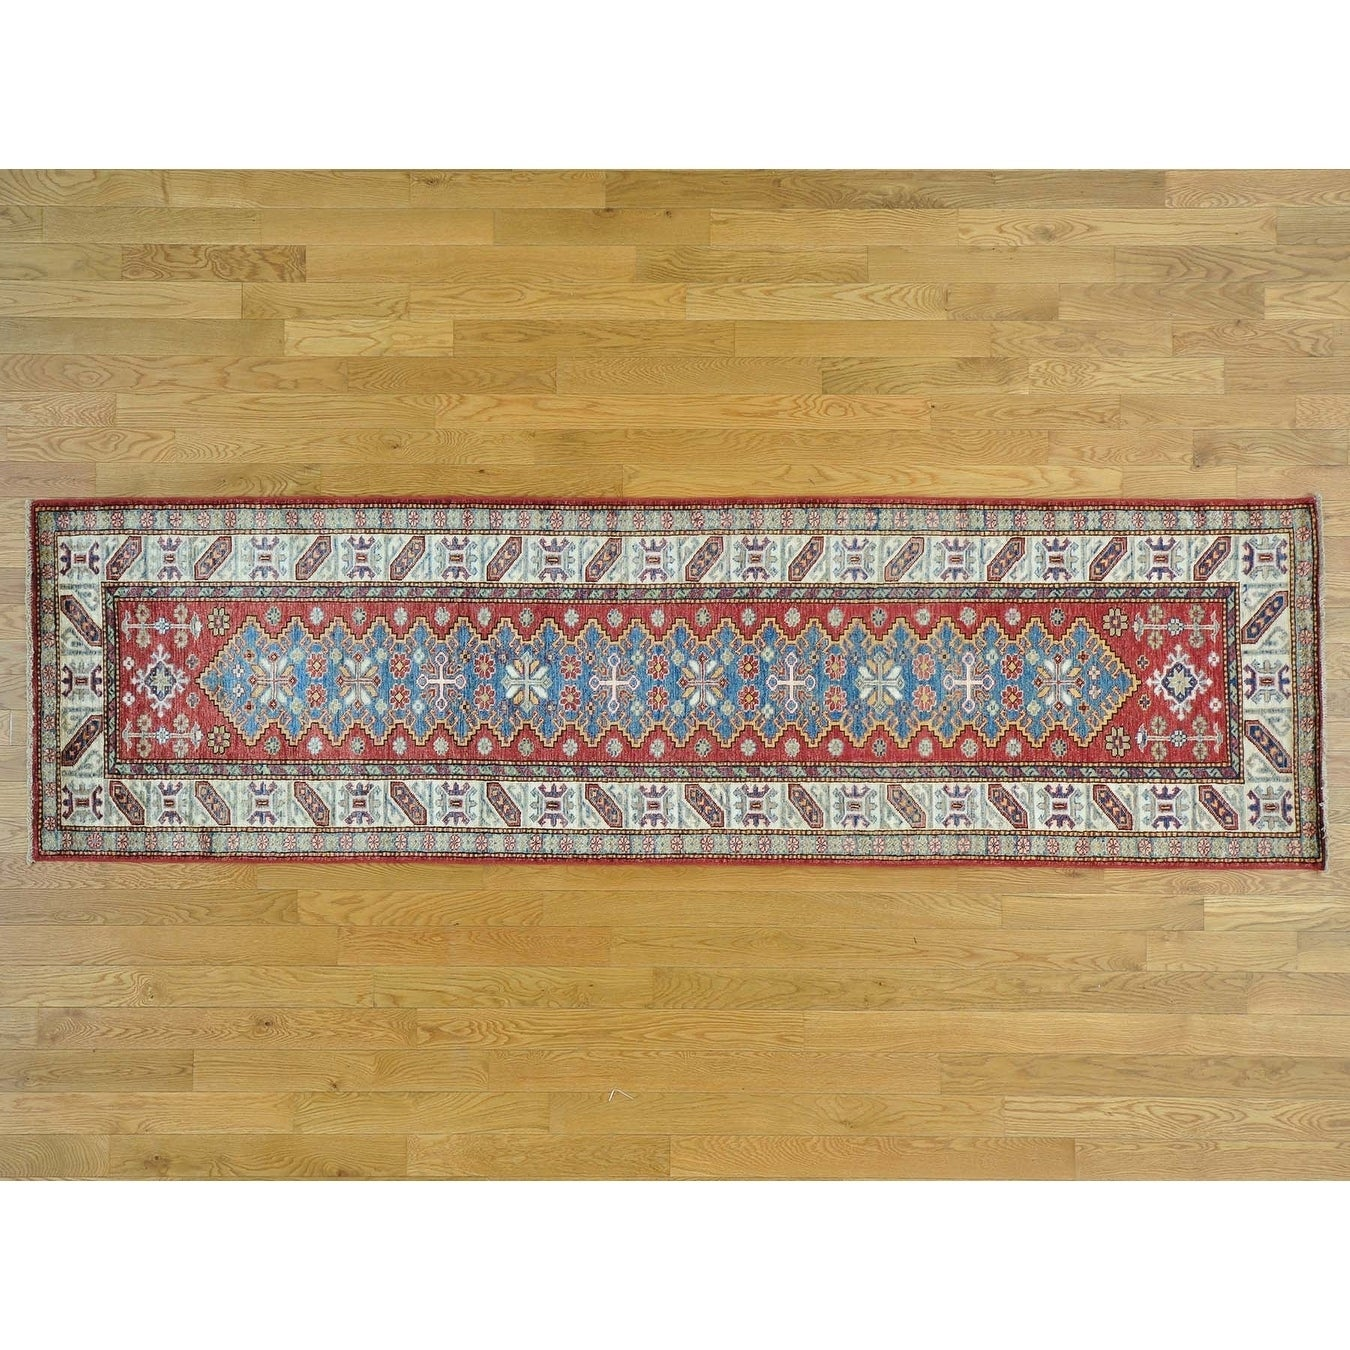 Hand Knotted Red Kazak with Wool Oriental Rug - 2'9 x 9'9